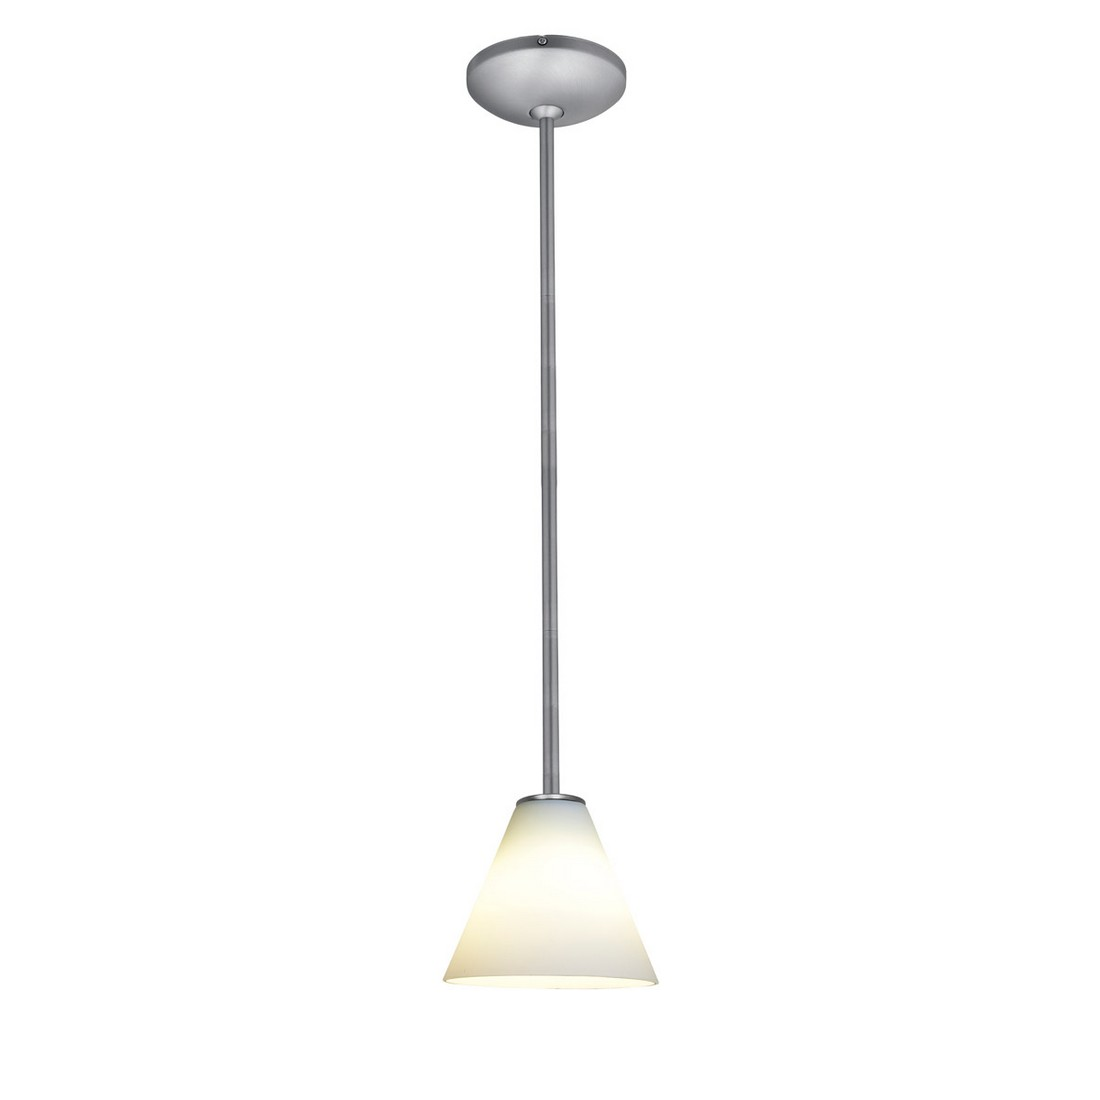 Access Martini Fluorescent White Stem Pendant in Brushed Steel